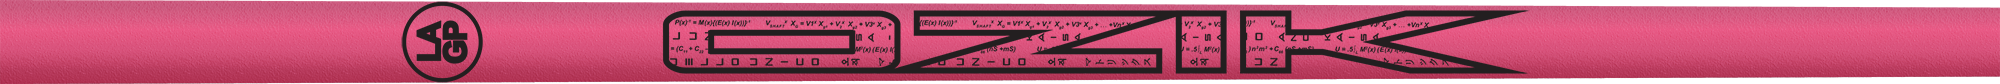 Ozik White Tie: Neon Pink Black Textured - Wood 40 R